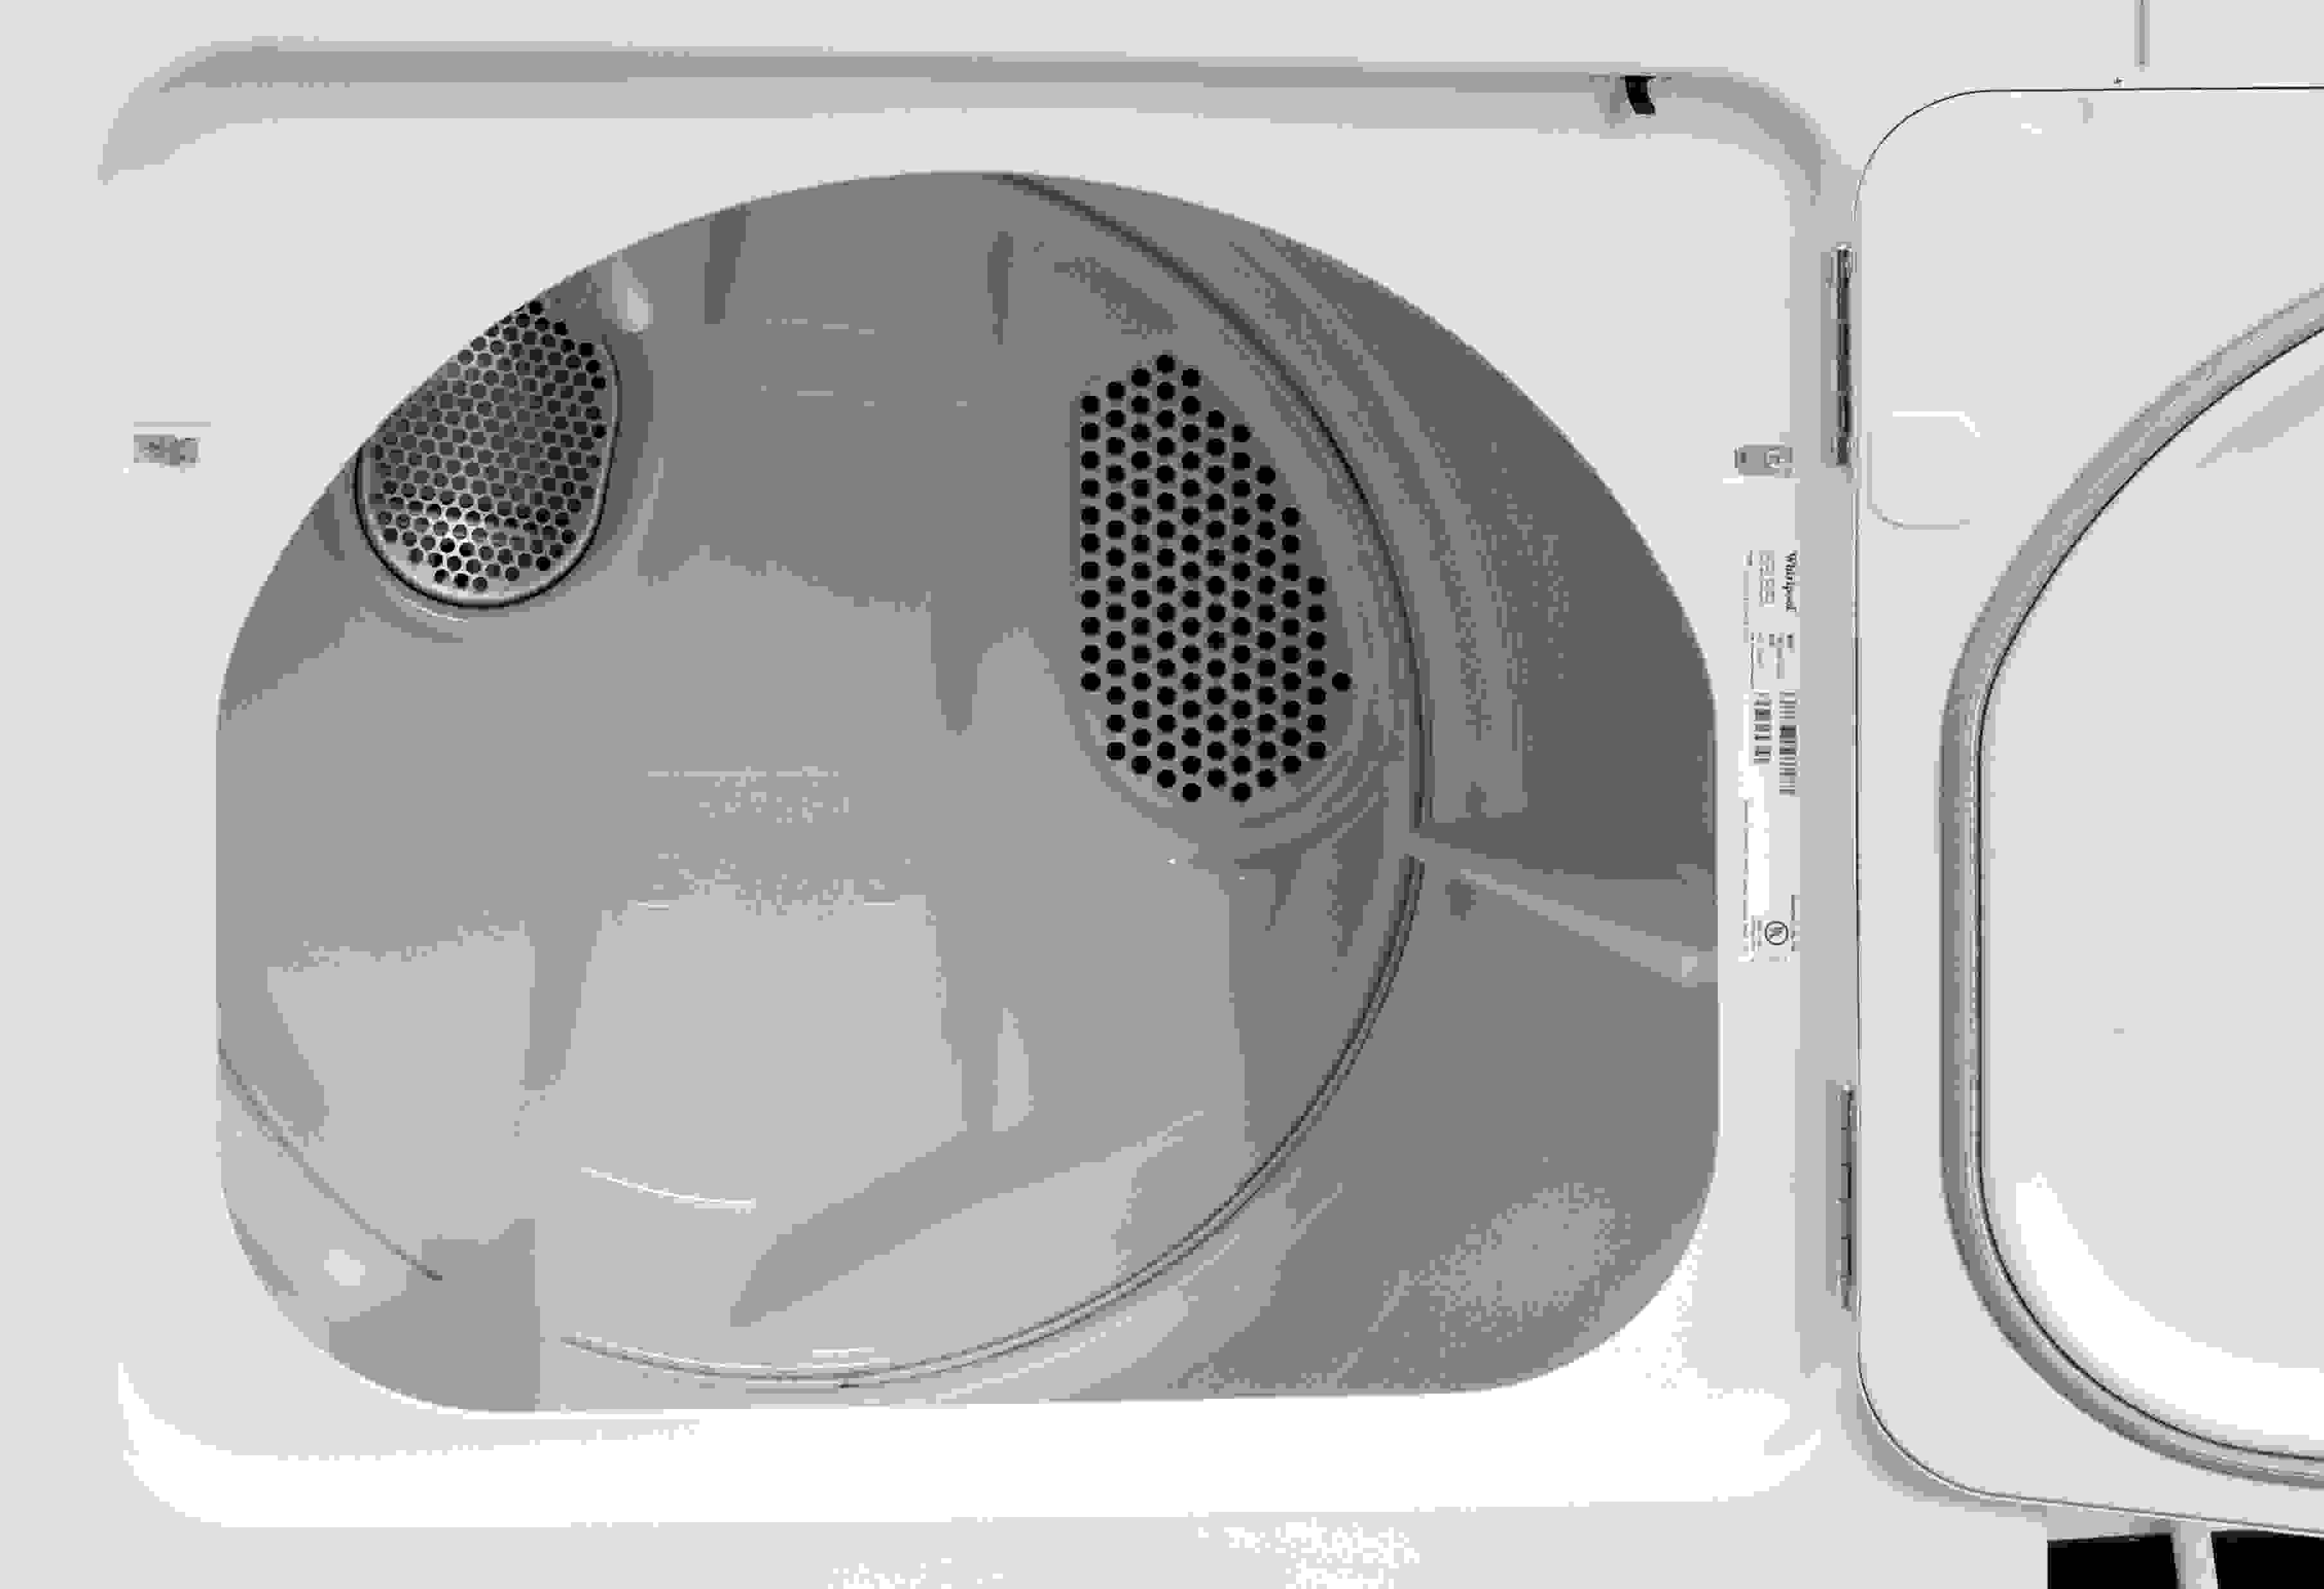 The Whirlpool WED4815EW has a white drum and no internal light—common features on models in this price range.